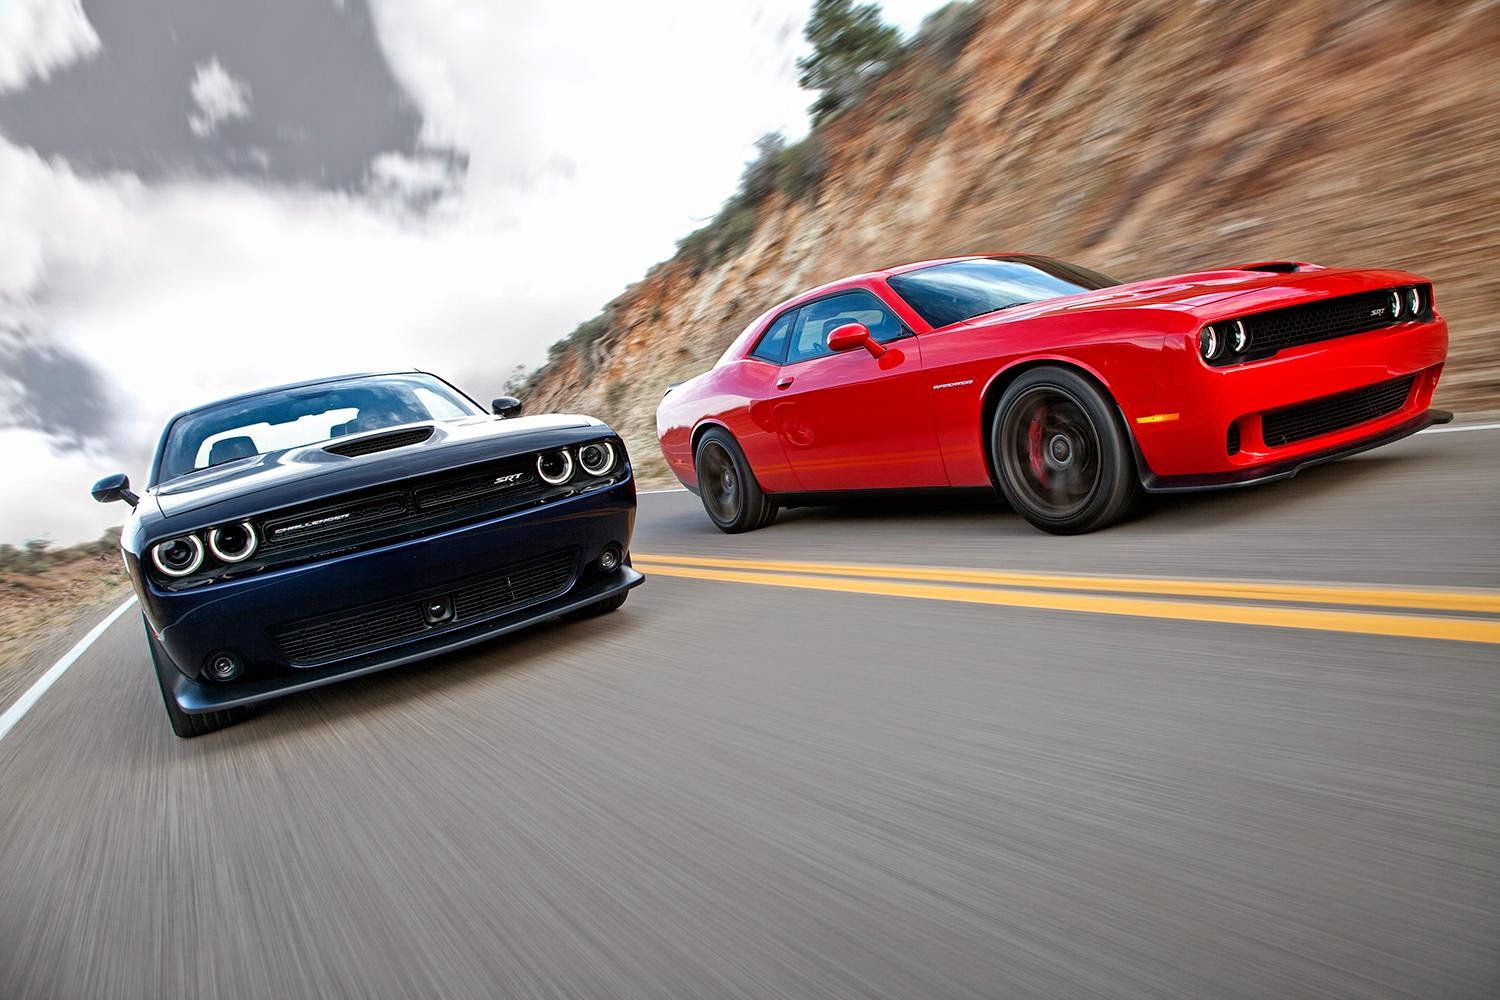 The Dodge Challenger Srt Hellcat The New King Of Muscle